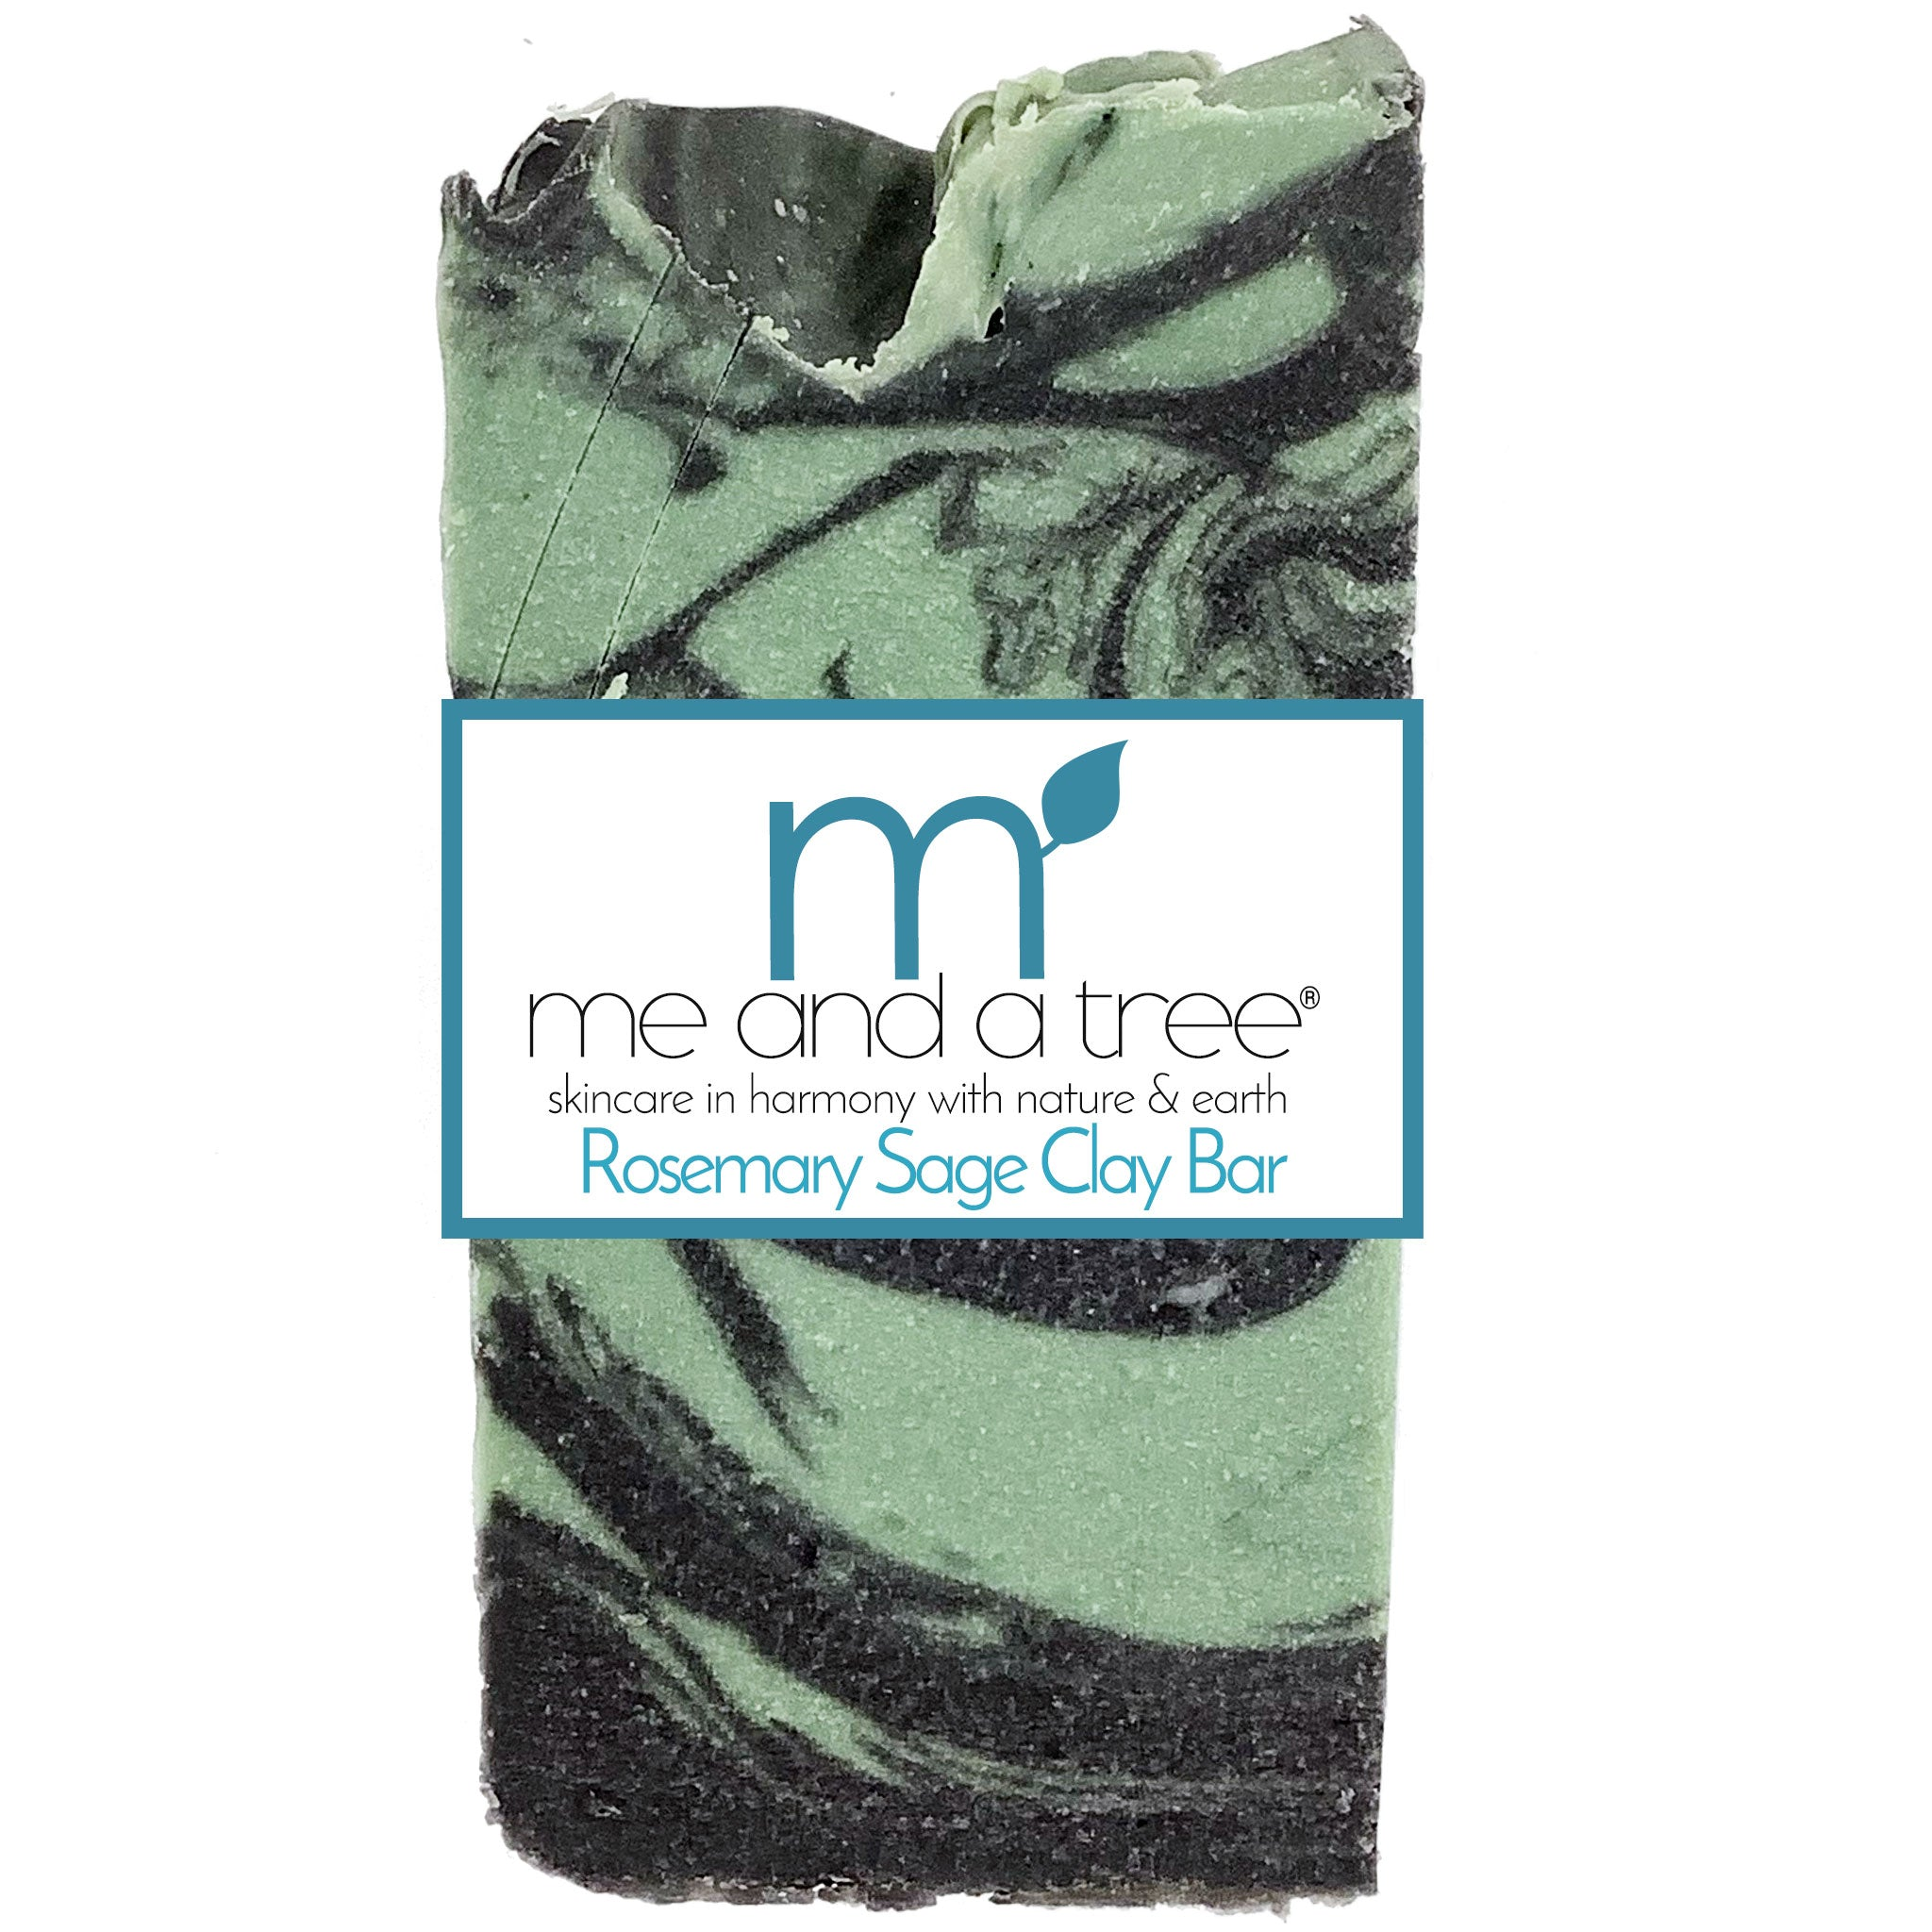 Rosemary Sage Clay Natural Artisan Handcrafted Face & Body Vegan Bar Soap